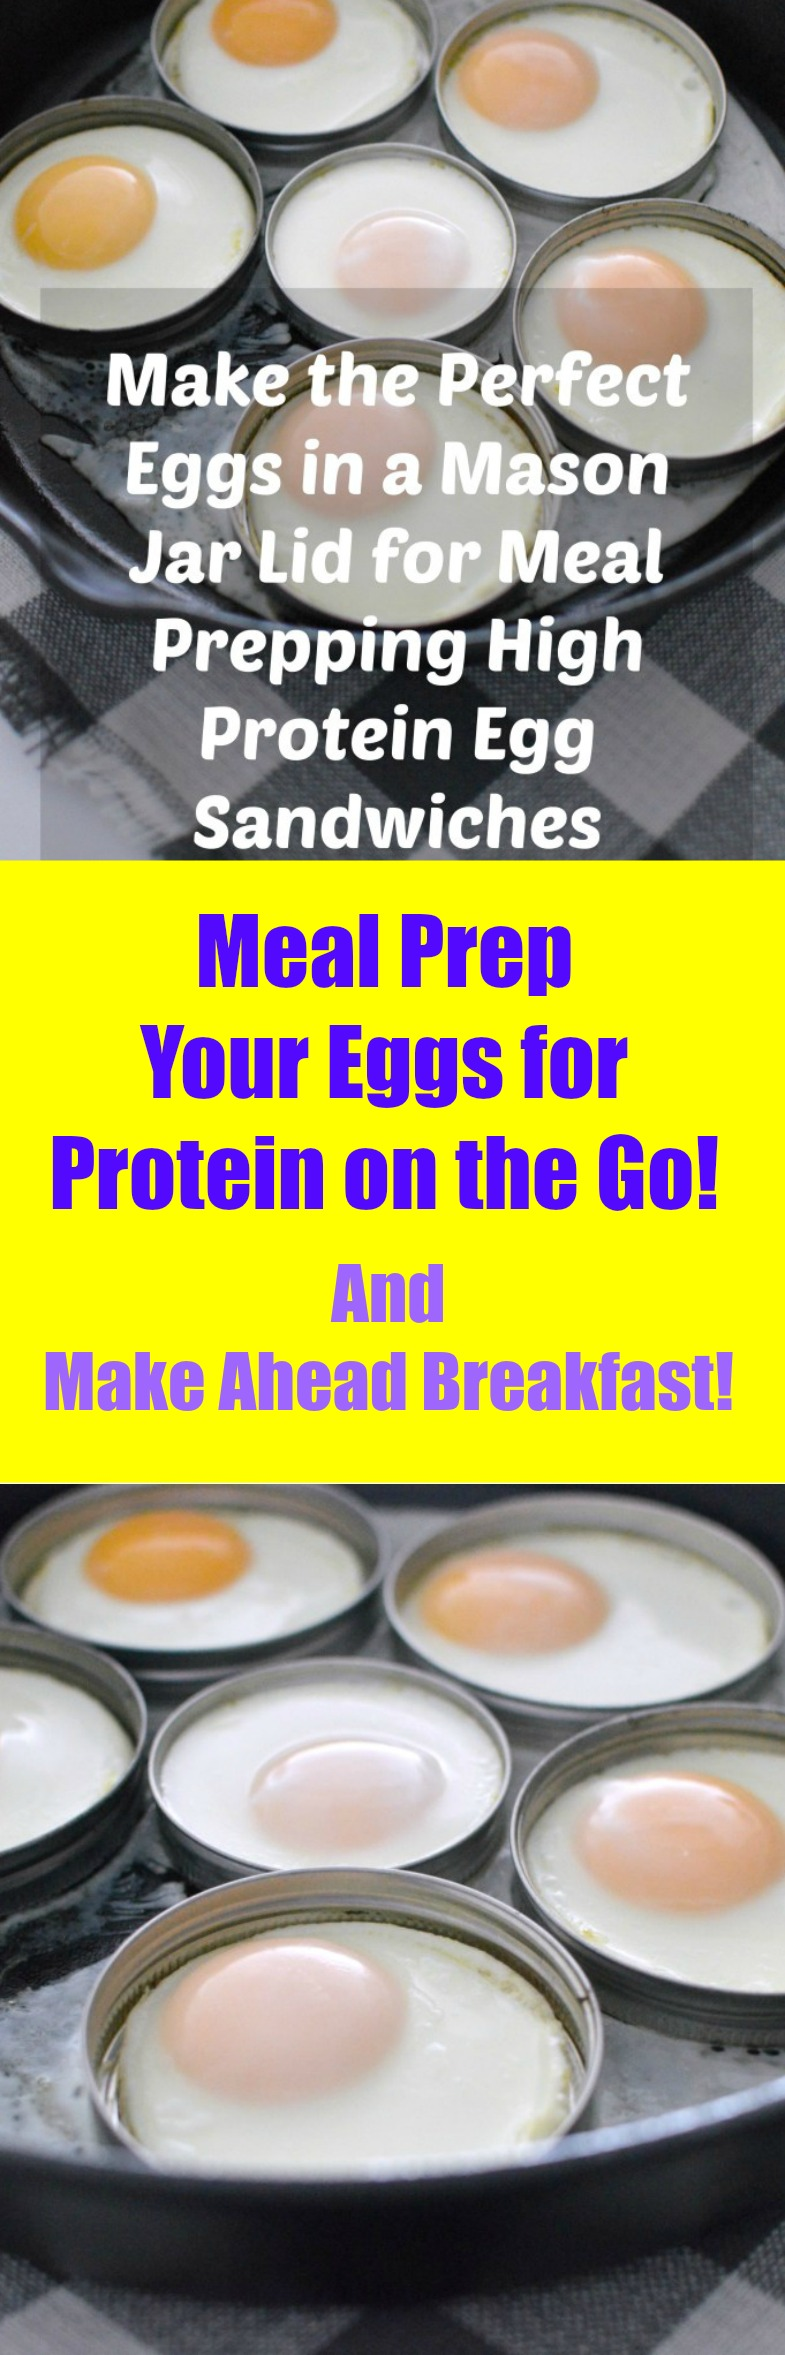 Meal Prep eggs in a mason jar lid! Kitchen Hack equals a healthy breakfast on the go. High protein equals weight loss.